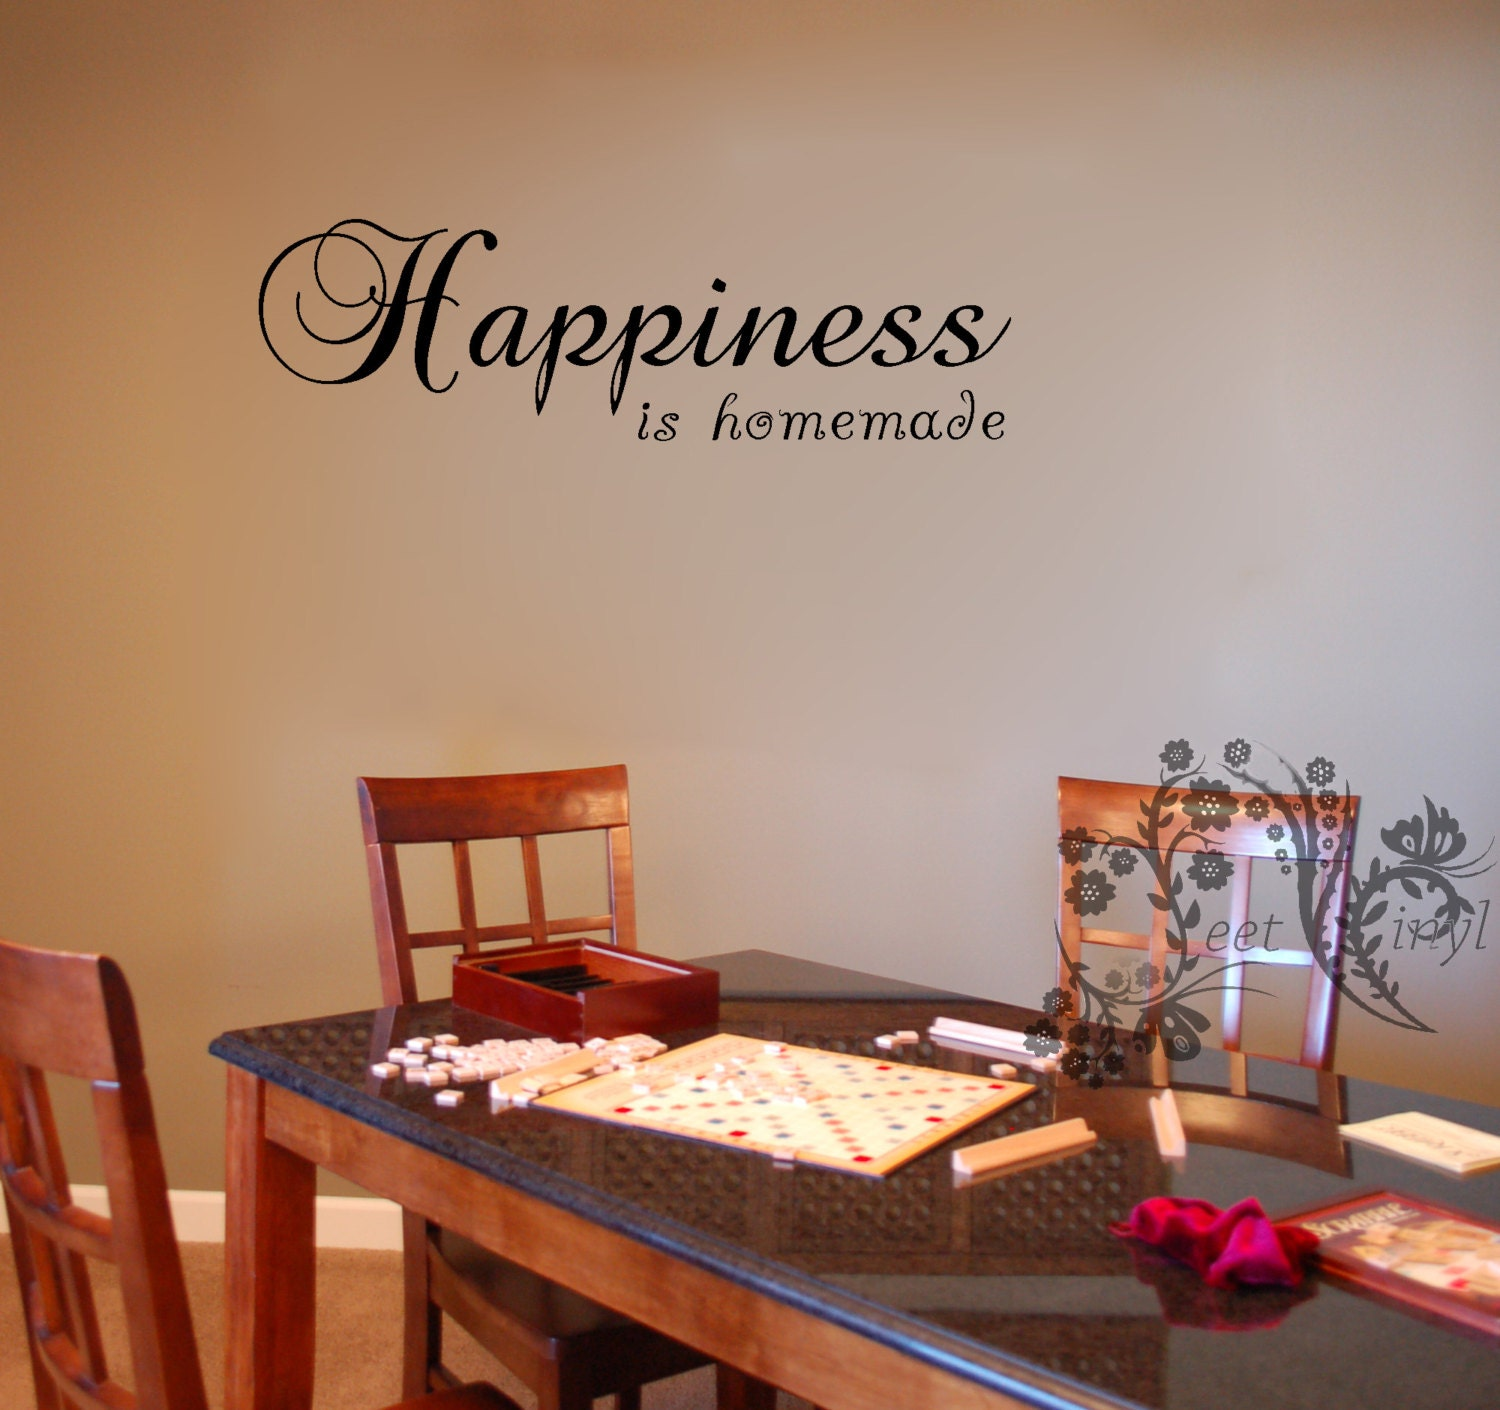 Wall sticker decor for kitchen